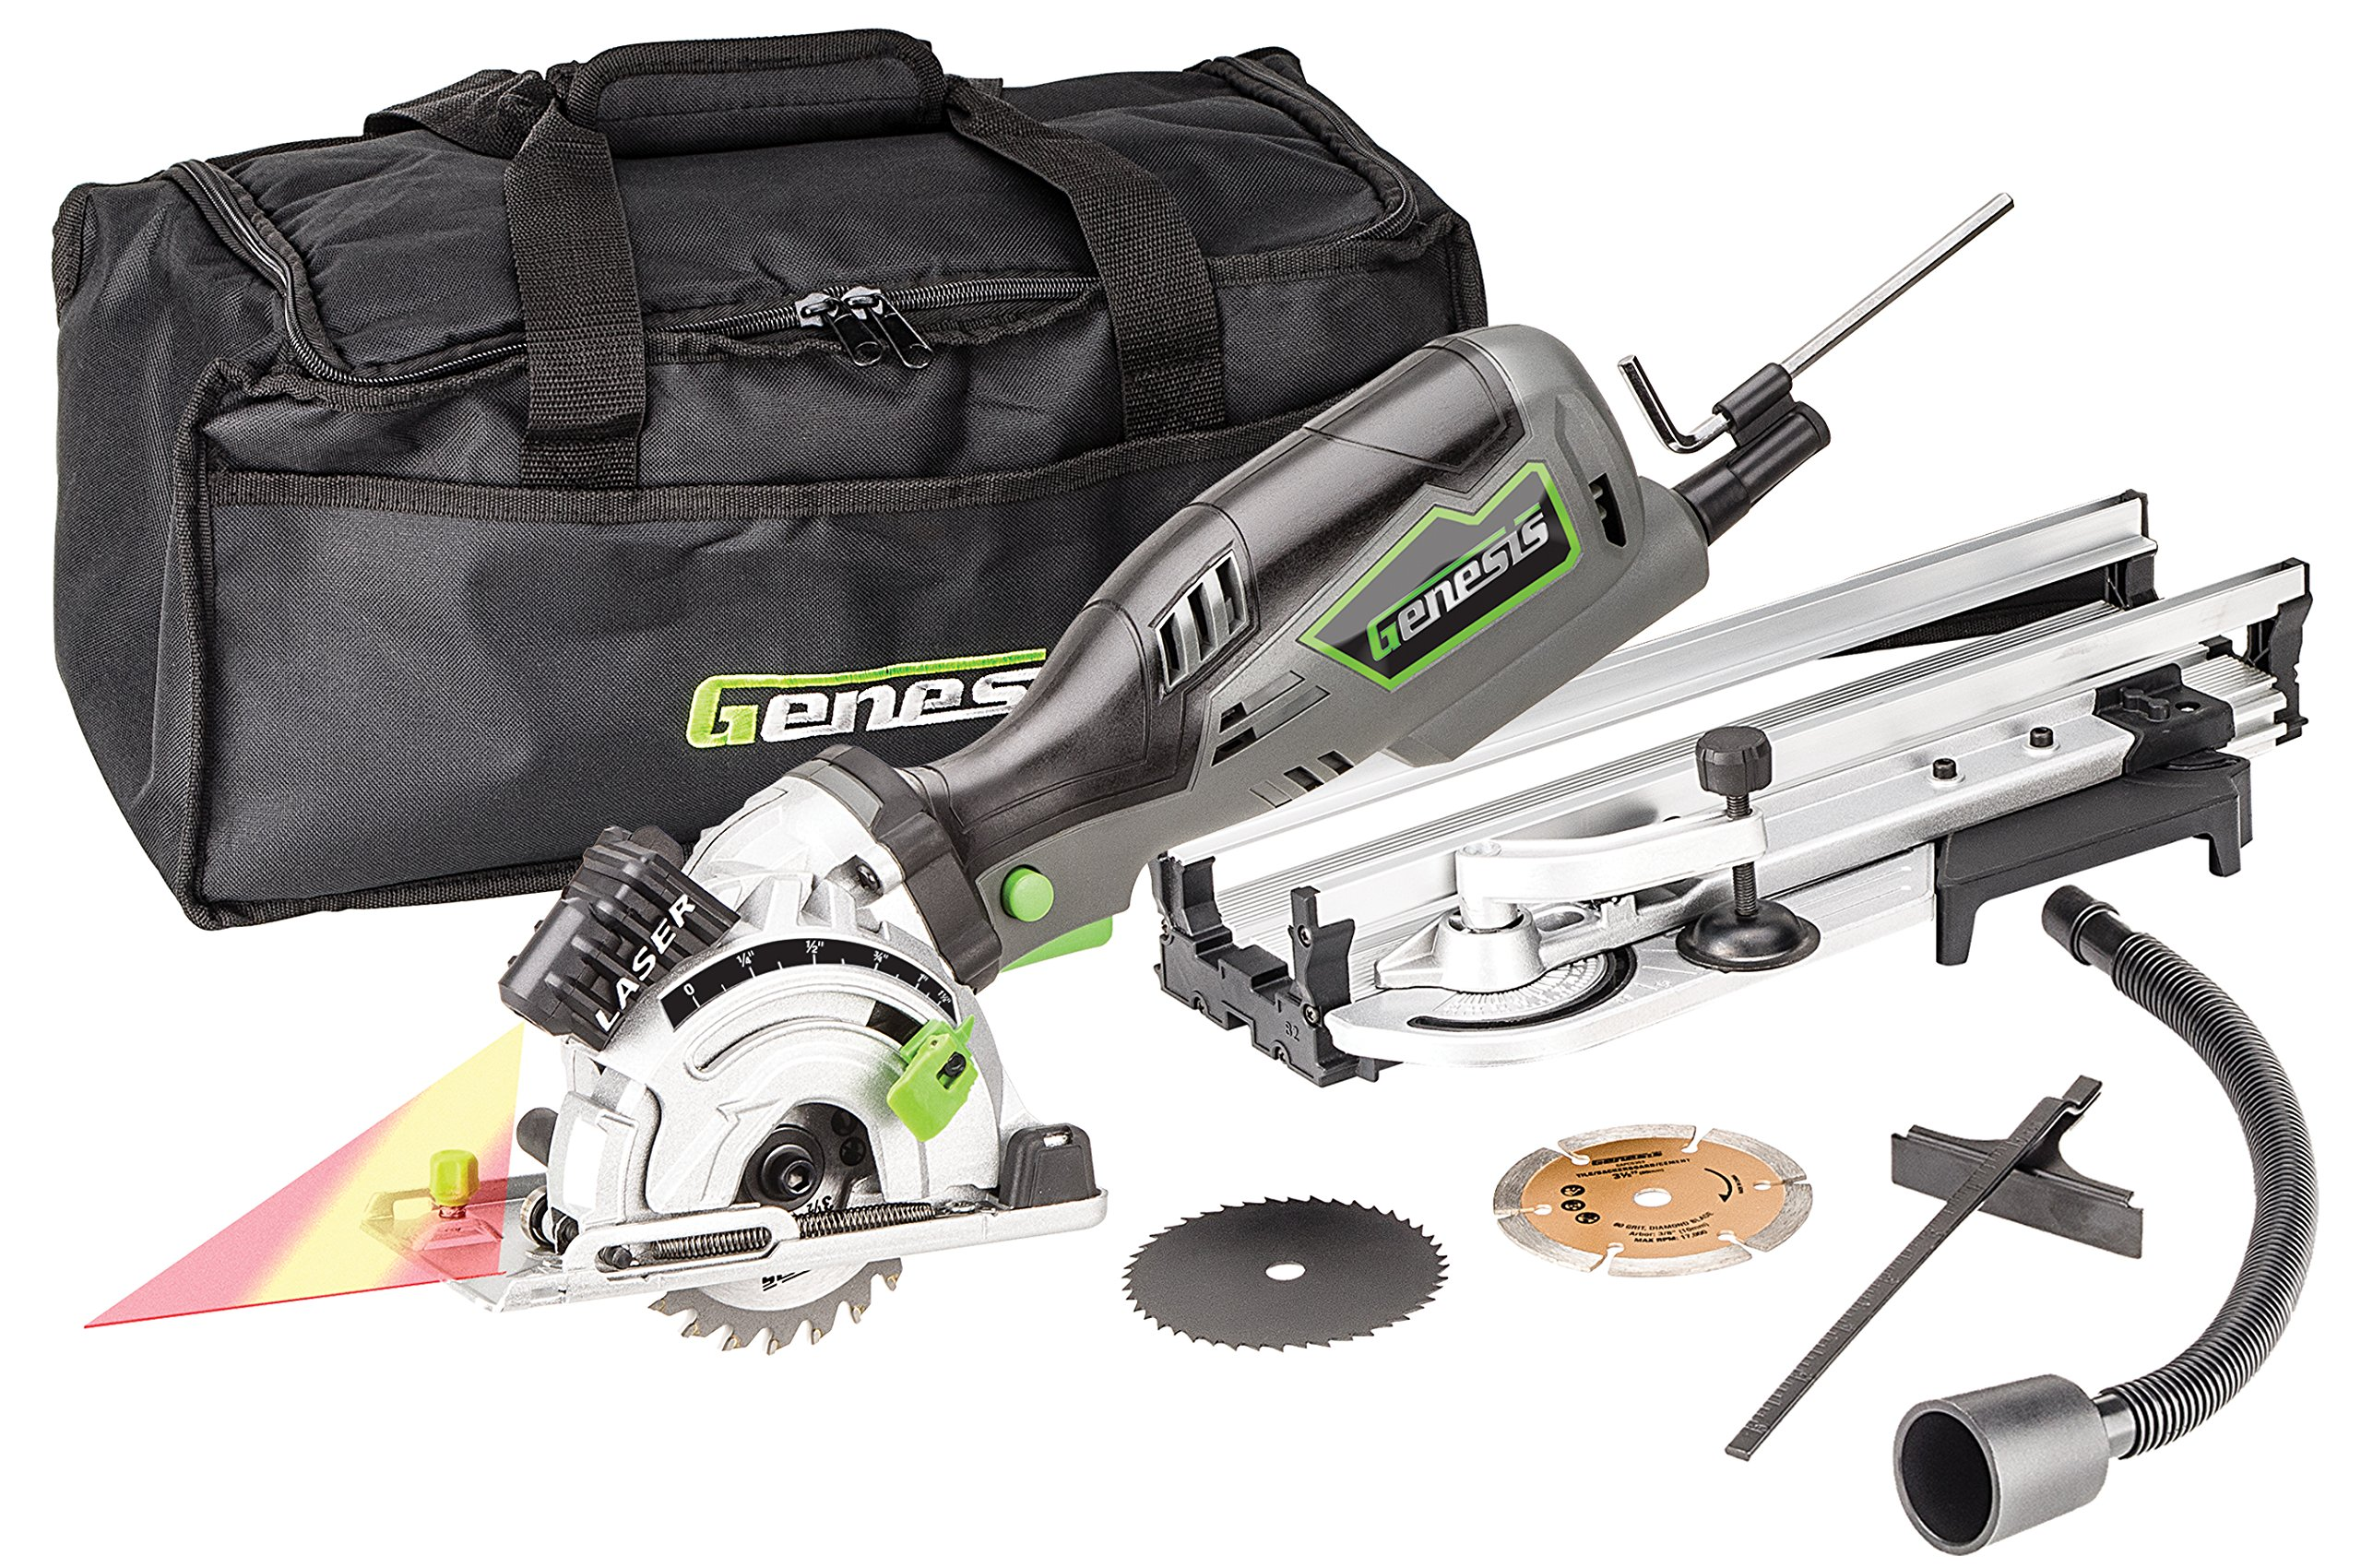 "Genesis GPCS535CK 5.8 Amp, 3-1/2"" Control Grip Plunge Compact Circular Saw Kit with Laser,  Miter Base, 3 assorted blades, Vacuum Adapter Hose, Rip Guide and Carrying bag"